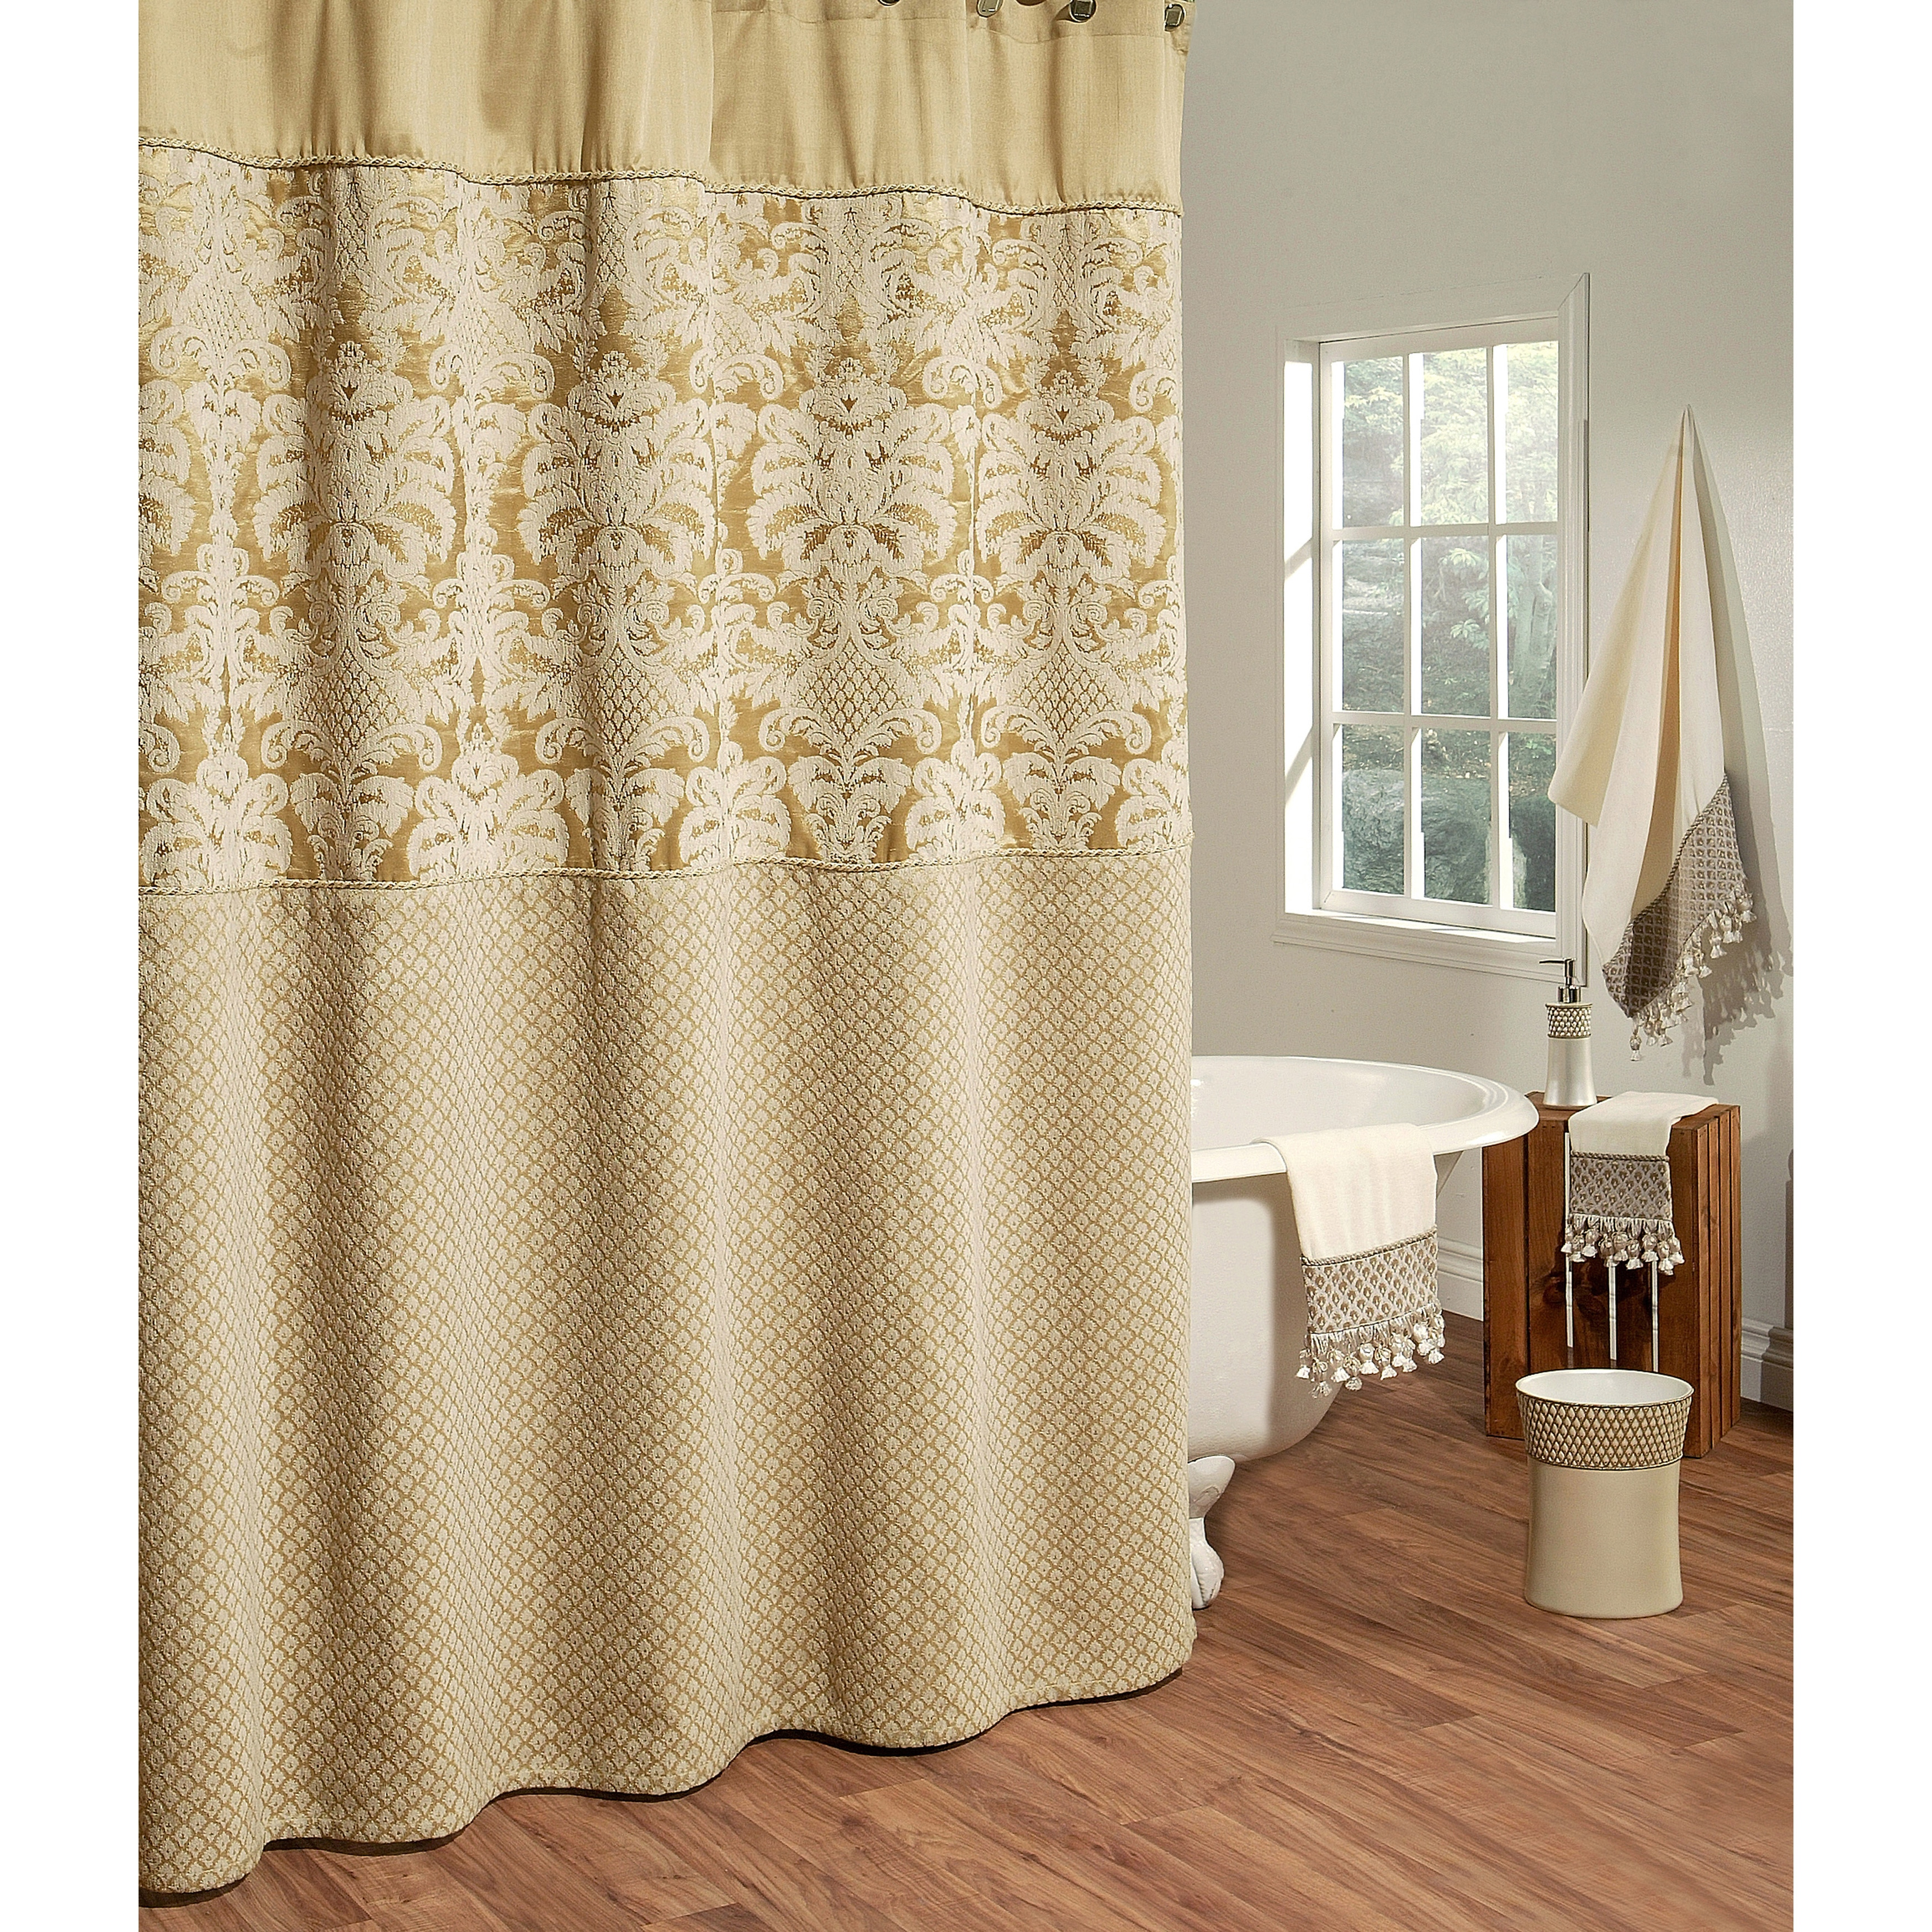 kellyforhouse charming stall valance ideas with luxury curtains shower